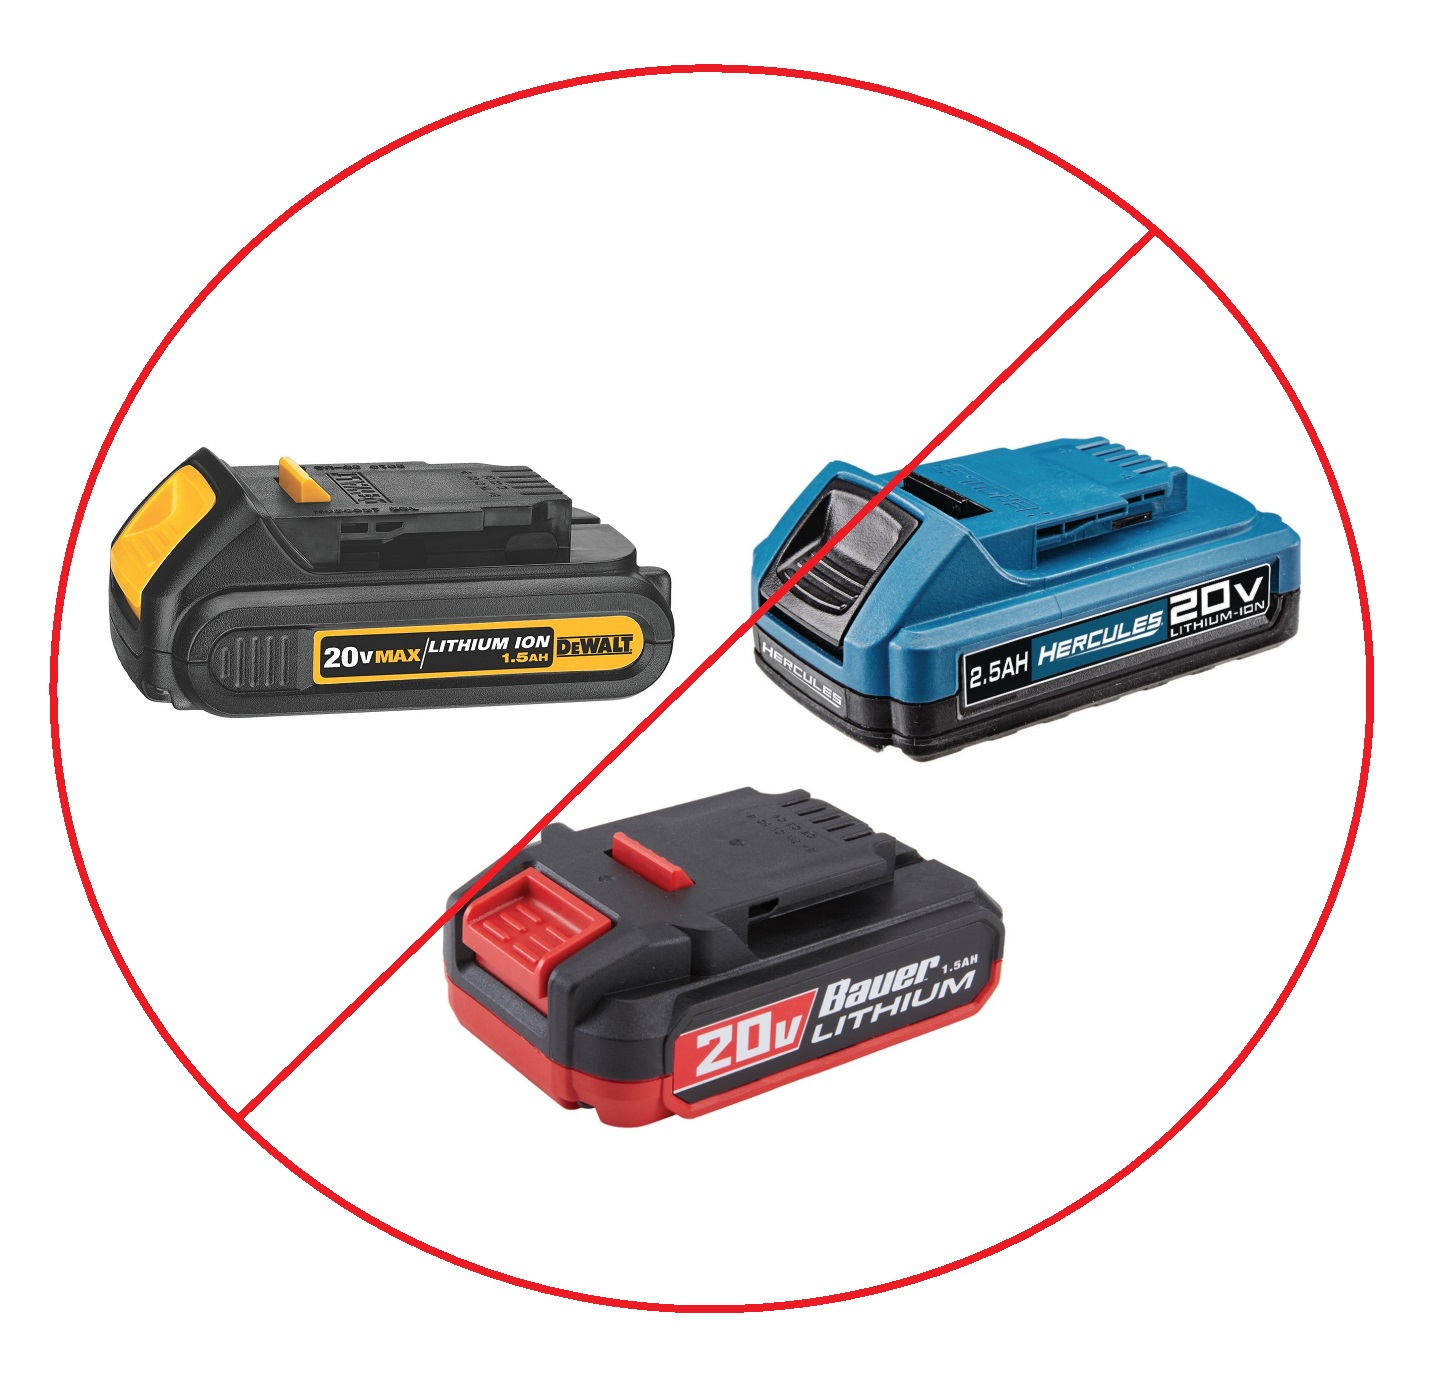 Are Dewalt and Hercules or Bauer Batteries Compatible? NOPE! It's Been Tested - Tool Craze